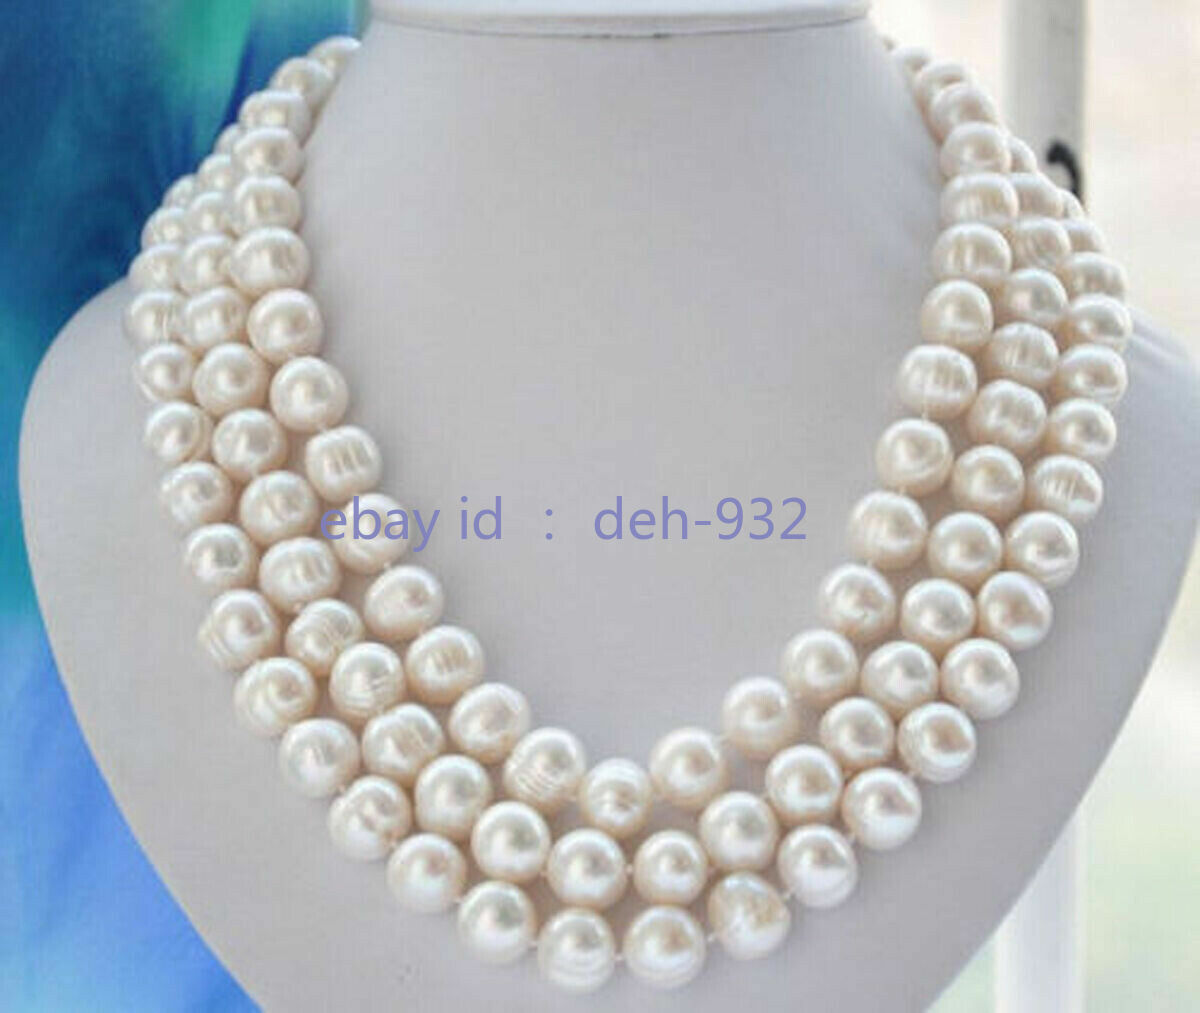 Charming Natural 10-11mm White Freshwater Cultured Pearl Necklace Long 54-100